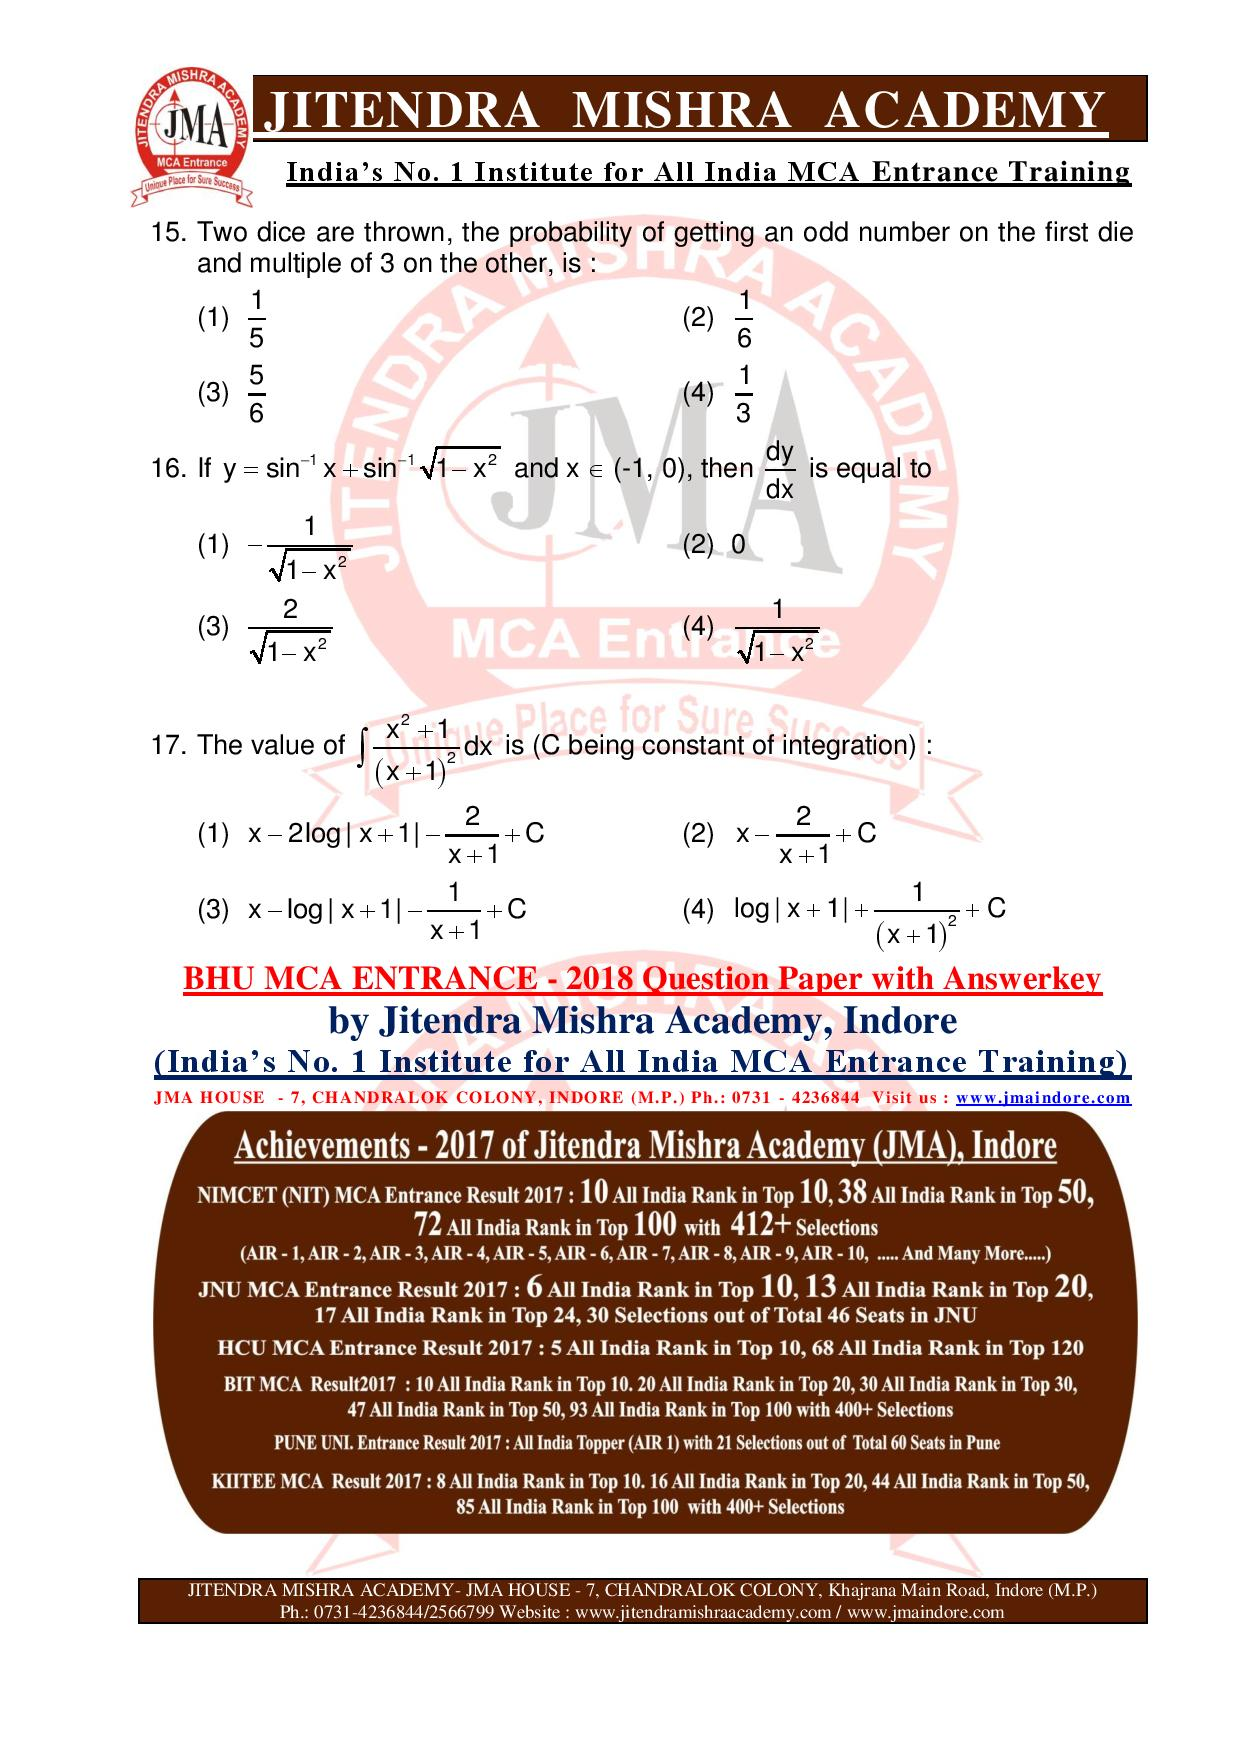 BHU MCA 2018 QUESTION PAPER12-page-005